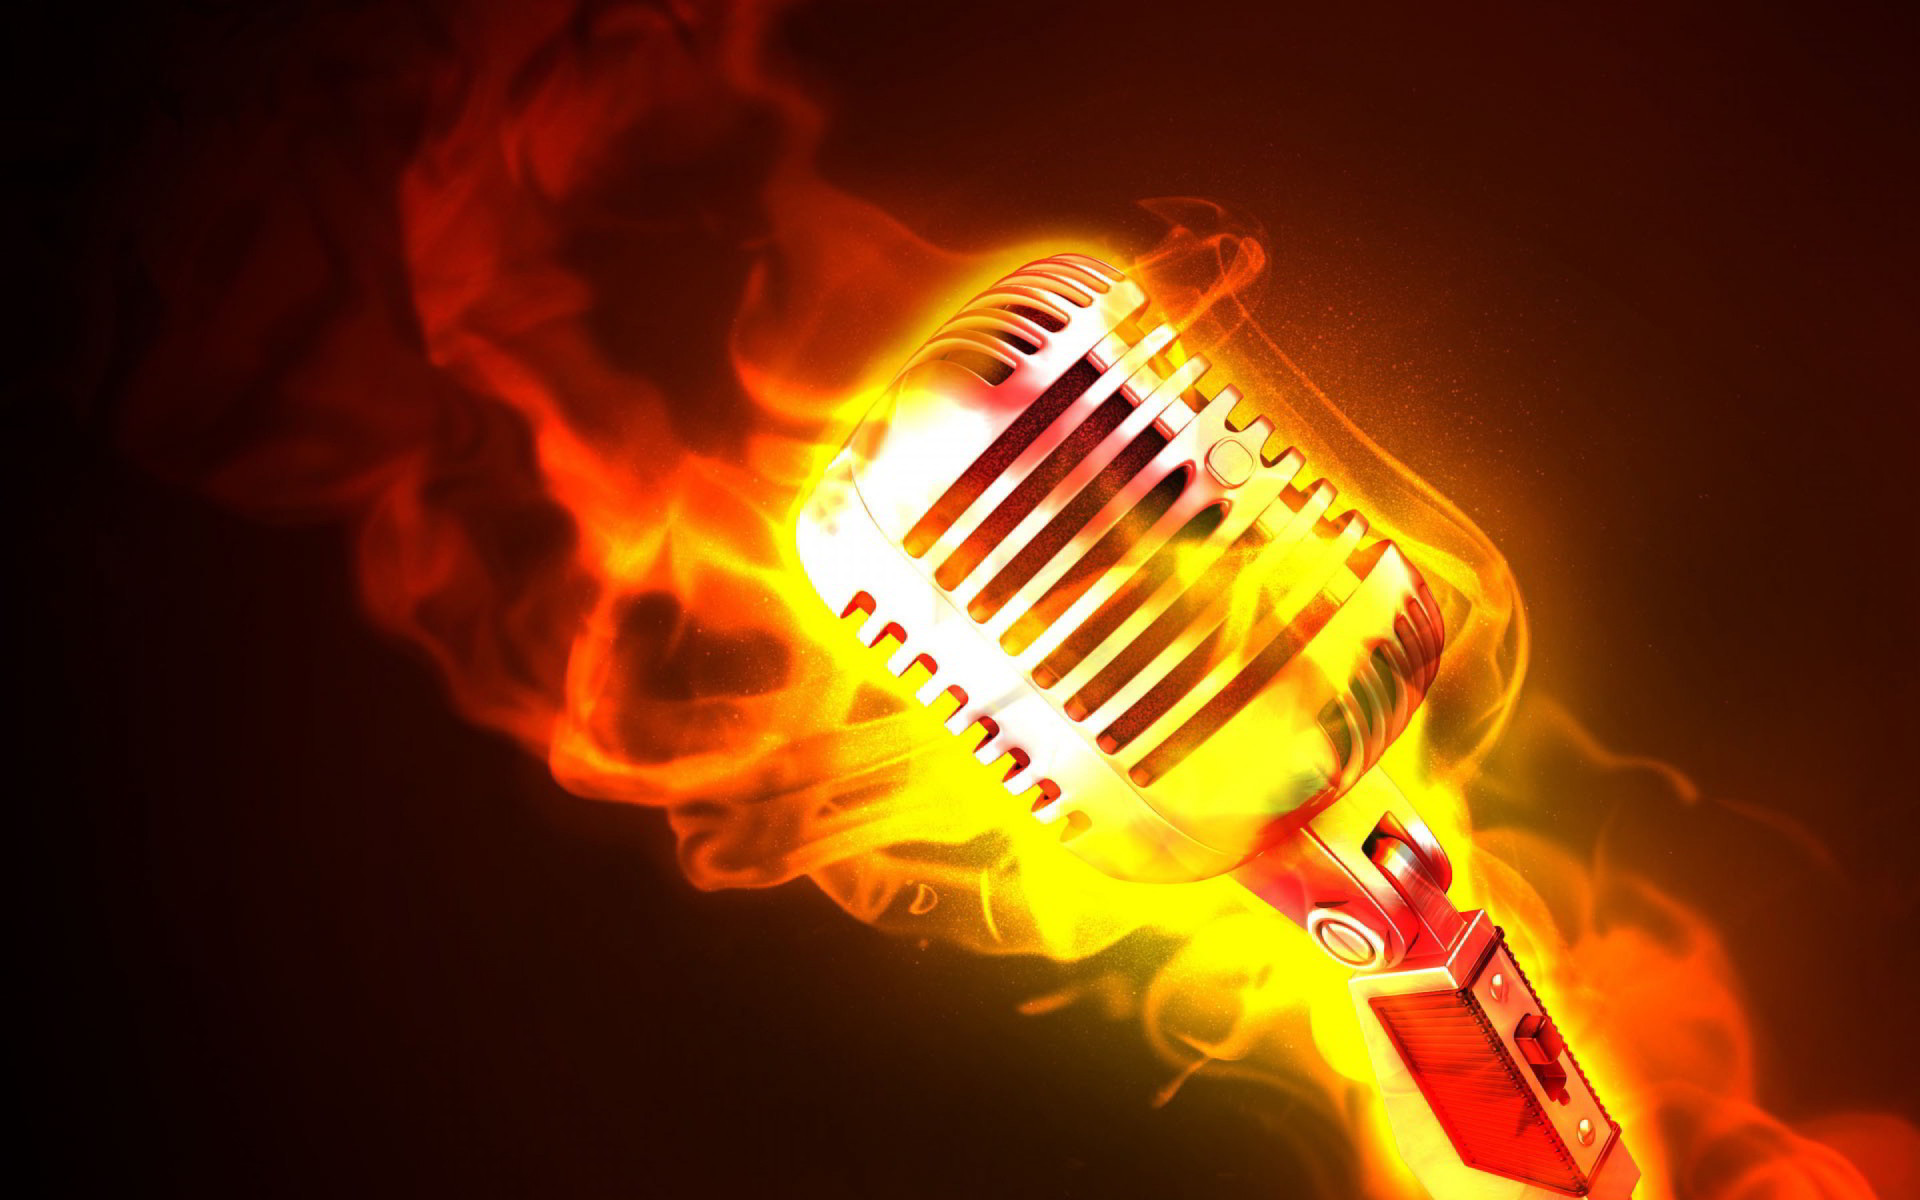 Res: 1920x1200, Mic on fire